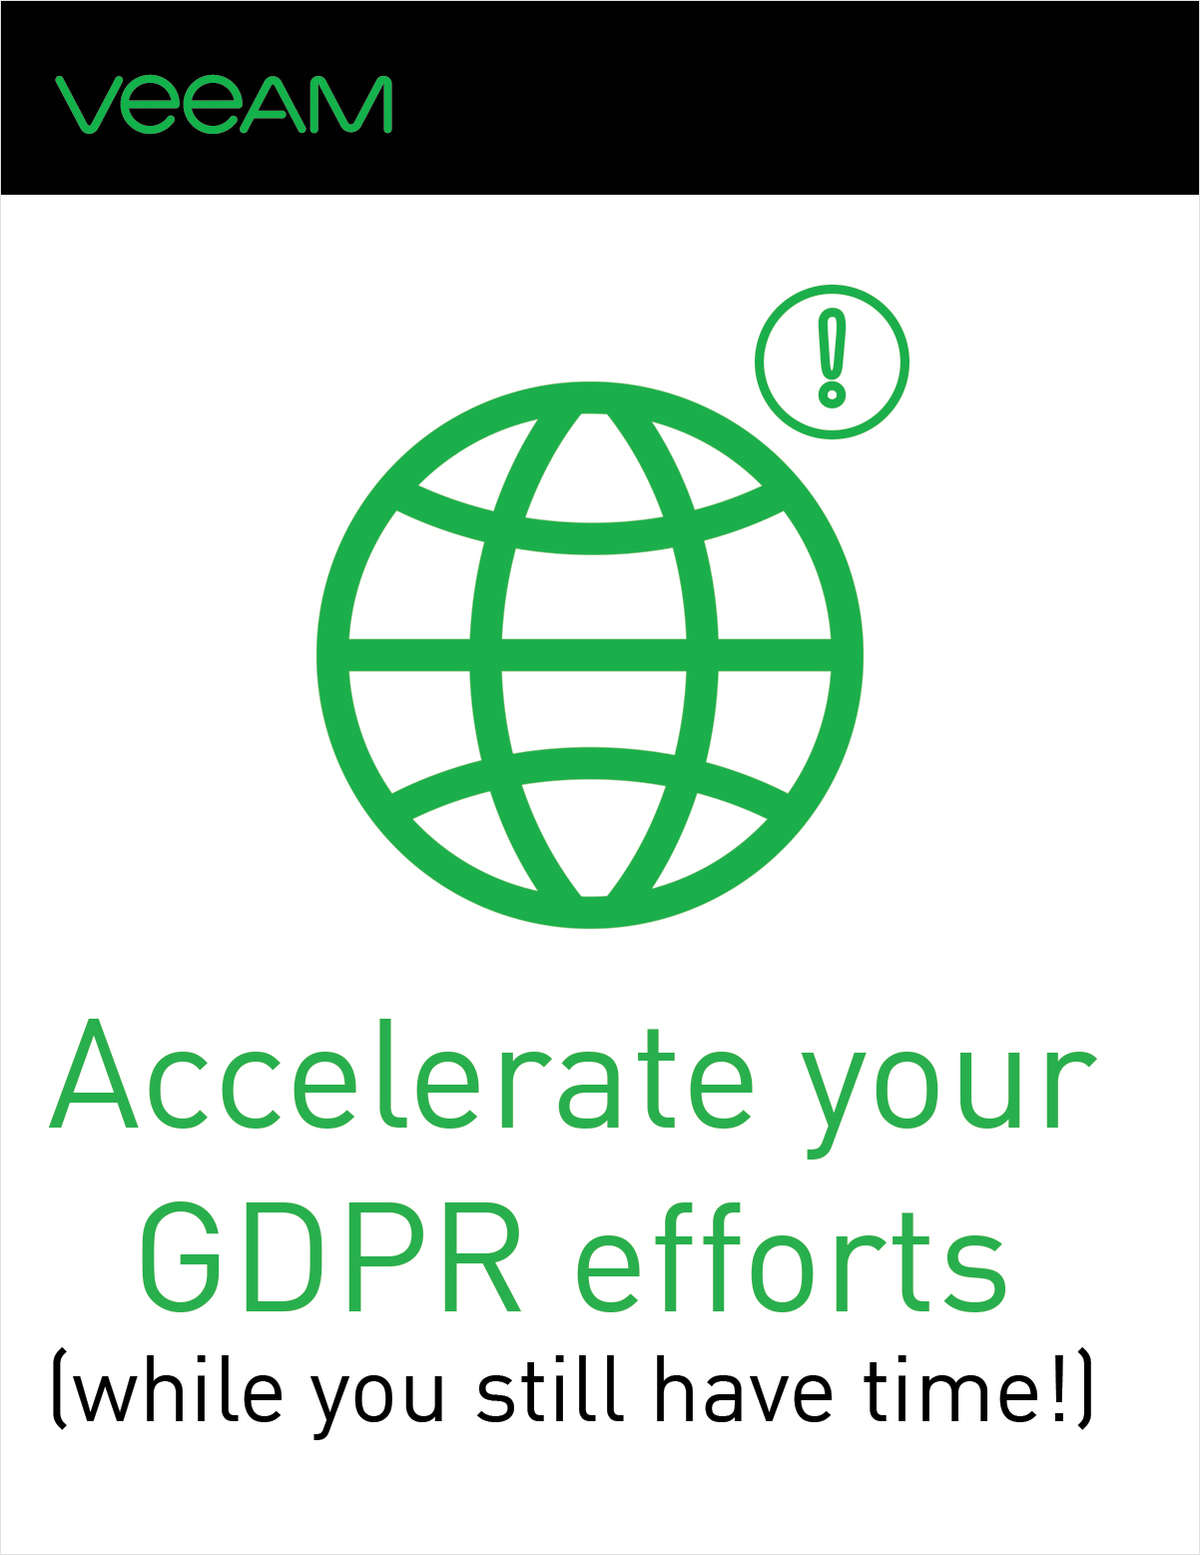 Accelerate your GDPR efforts (while you still have time!)